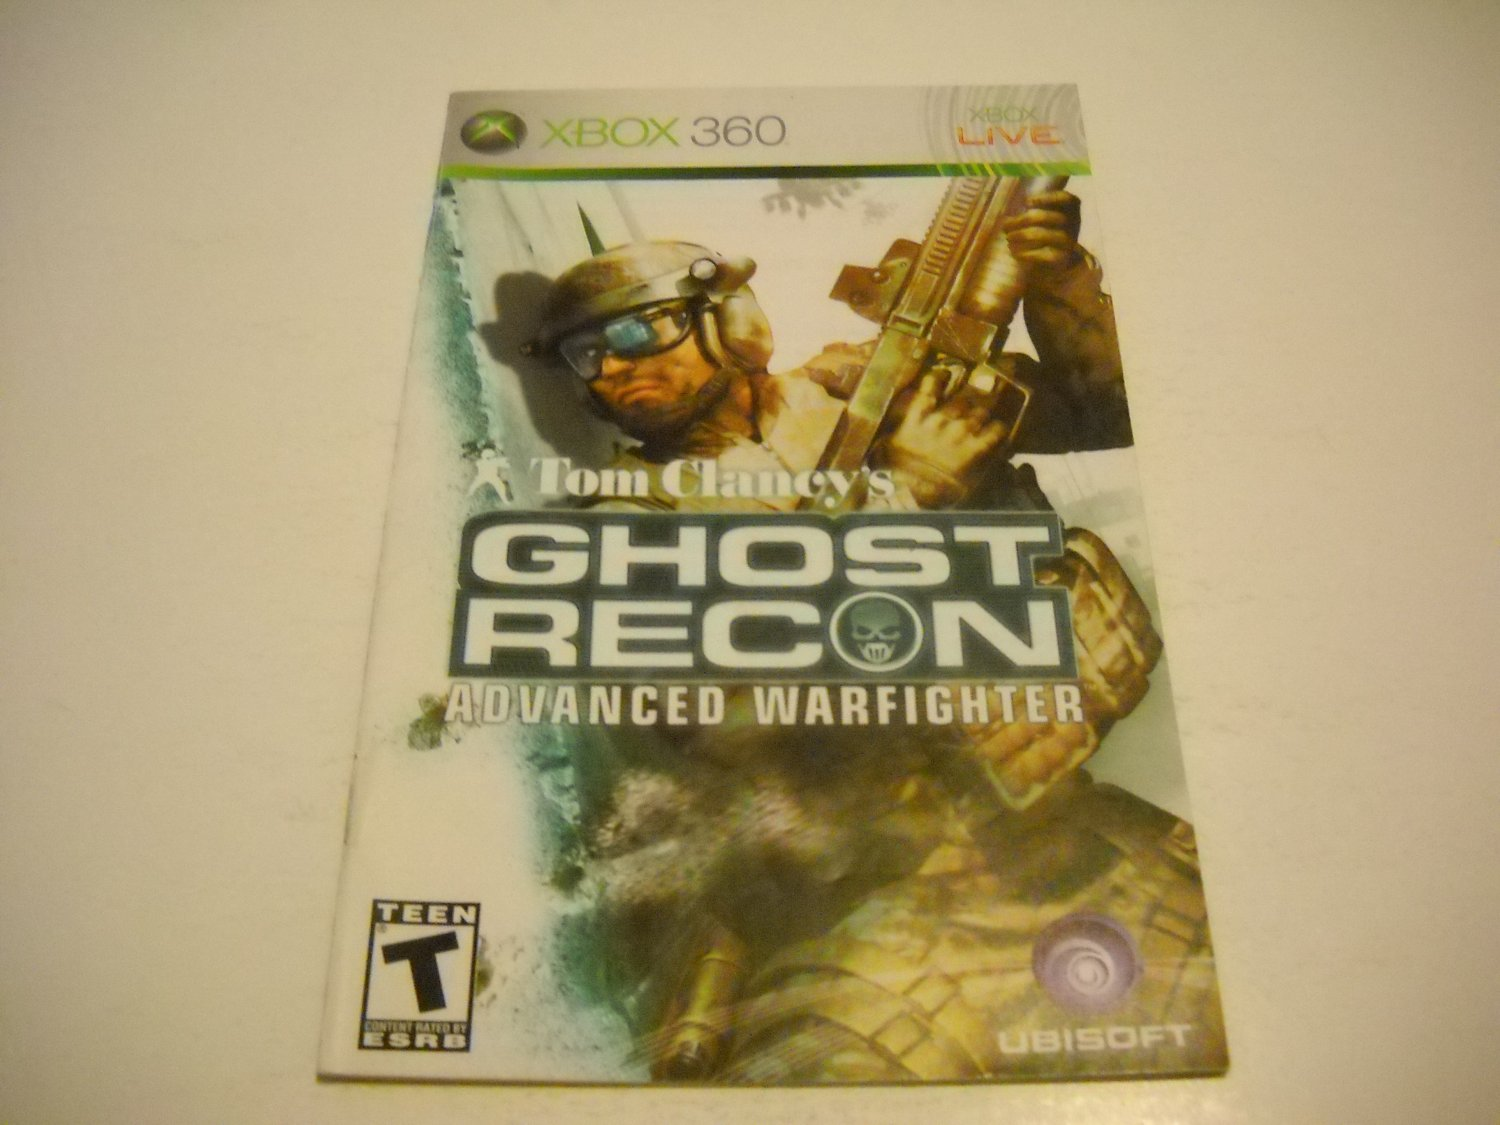 Manual ONLY ~  for Tom Clancy's Ghost Recon Advanced Warfighter   - Xbox 360 Instruction Booklet